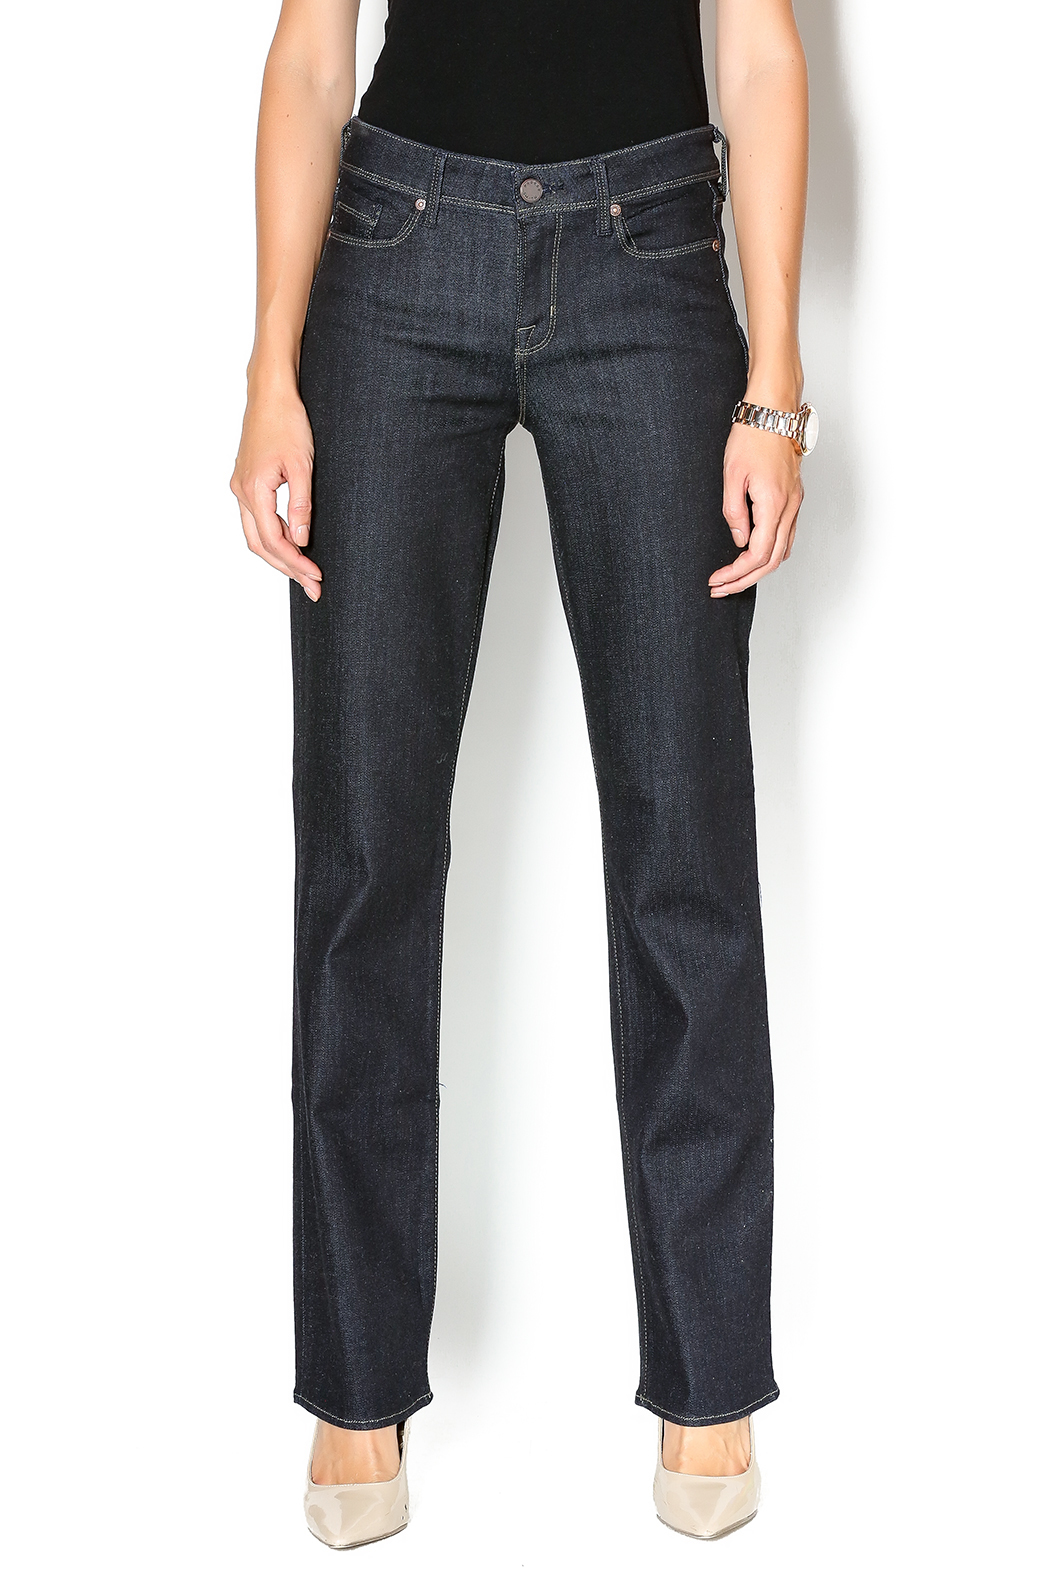 Parker Smith Lynn Straight Jean - Front Cropped Image